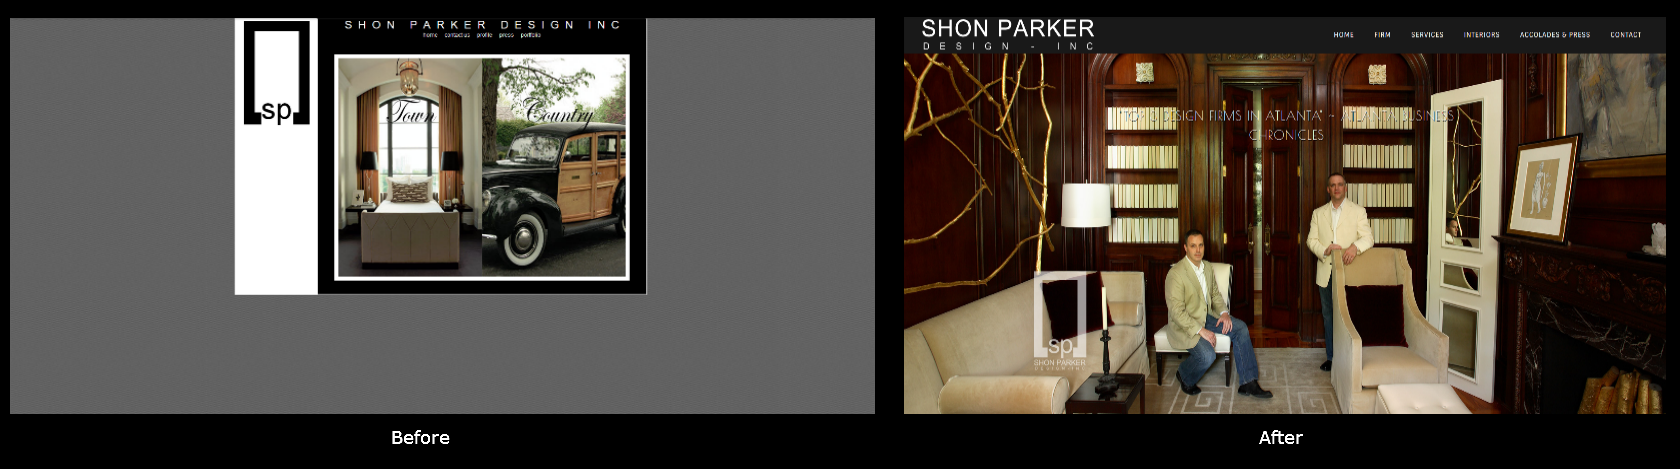 Shon Parker Before and After